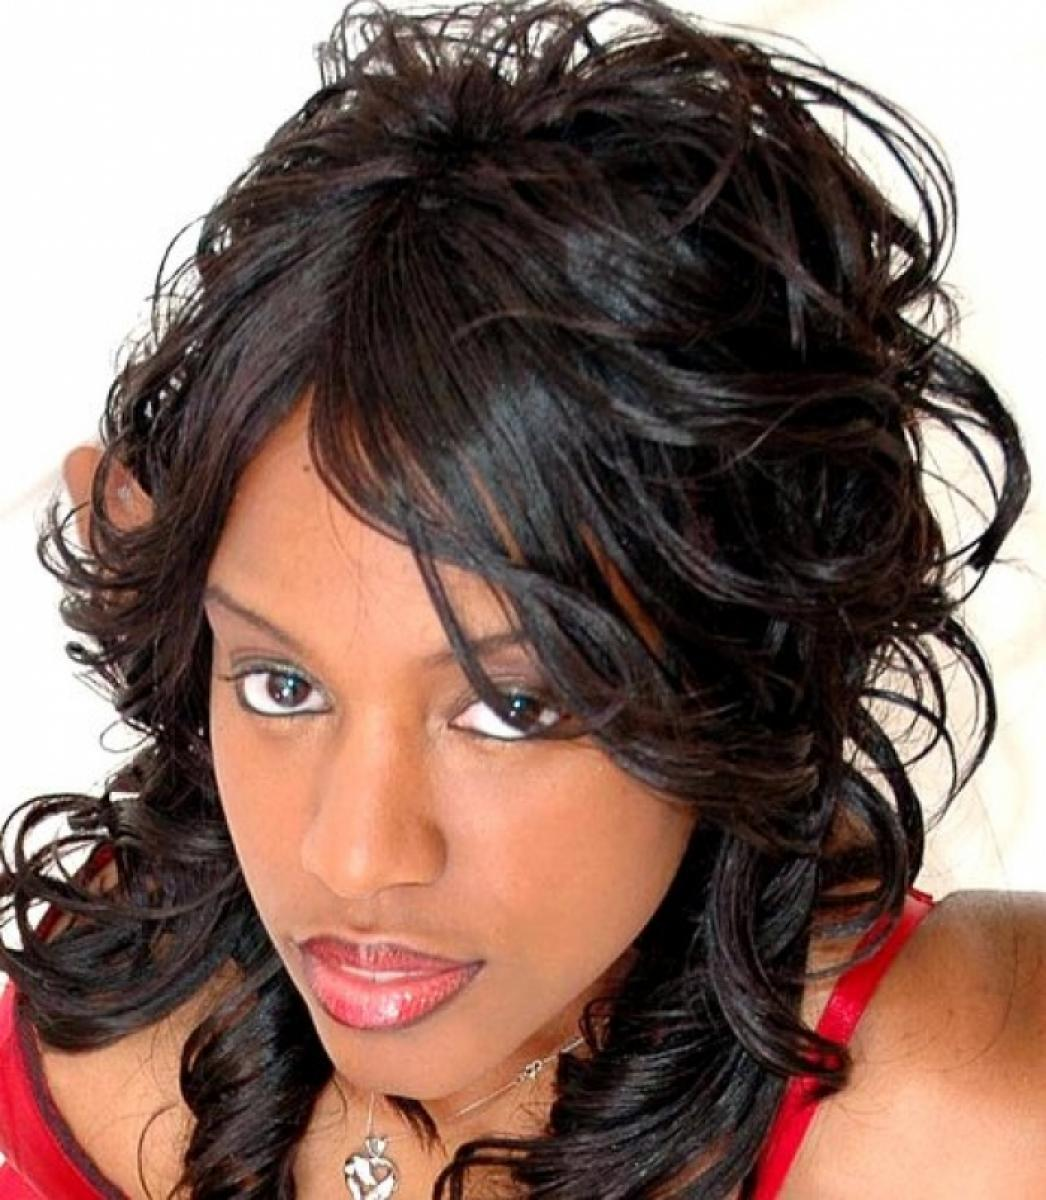 Pictures of Black People Hairstyles Magazine